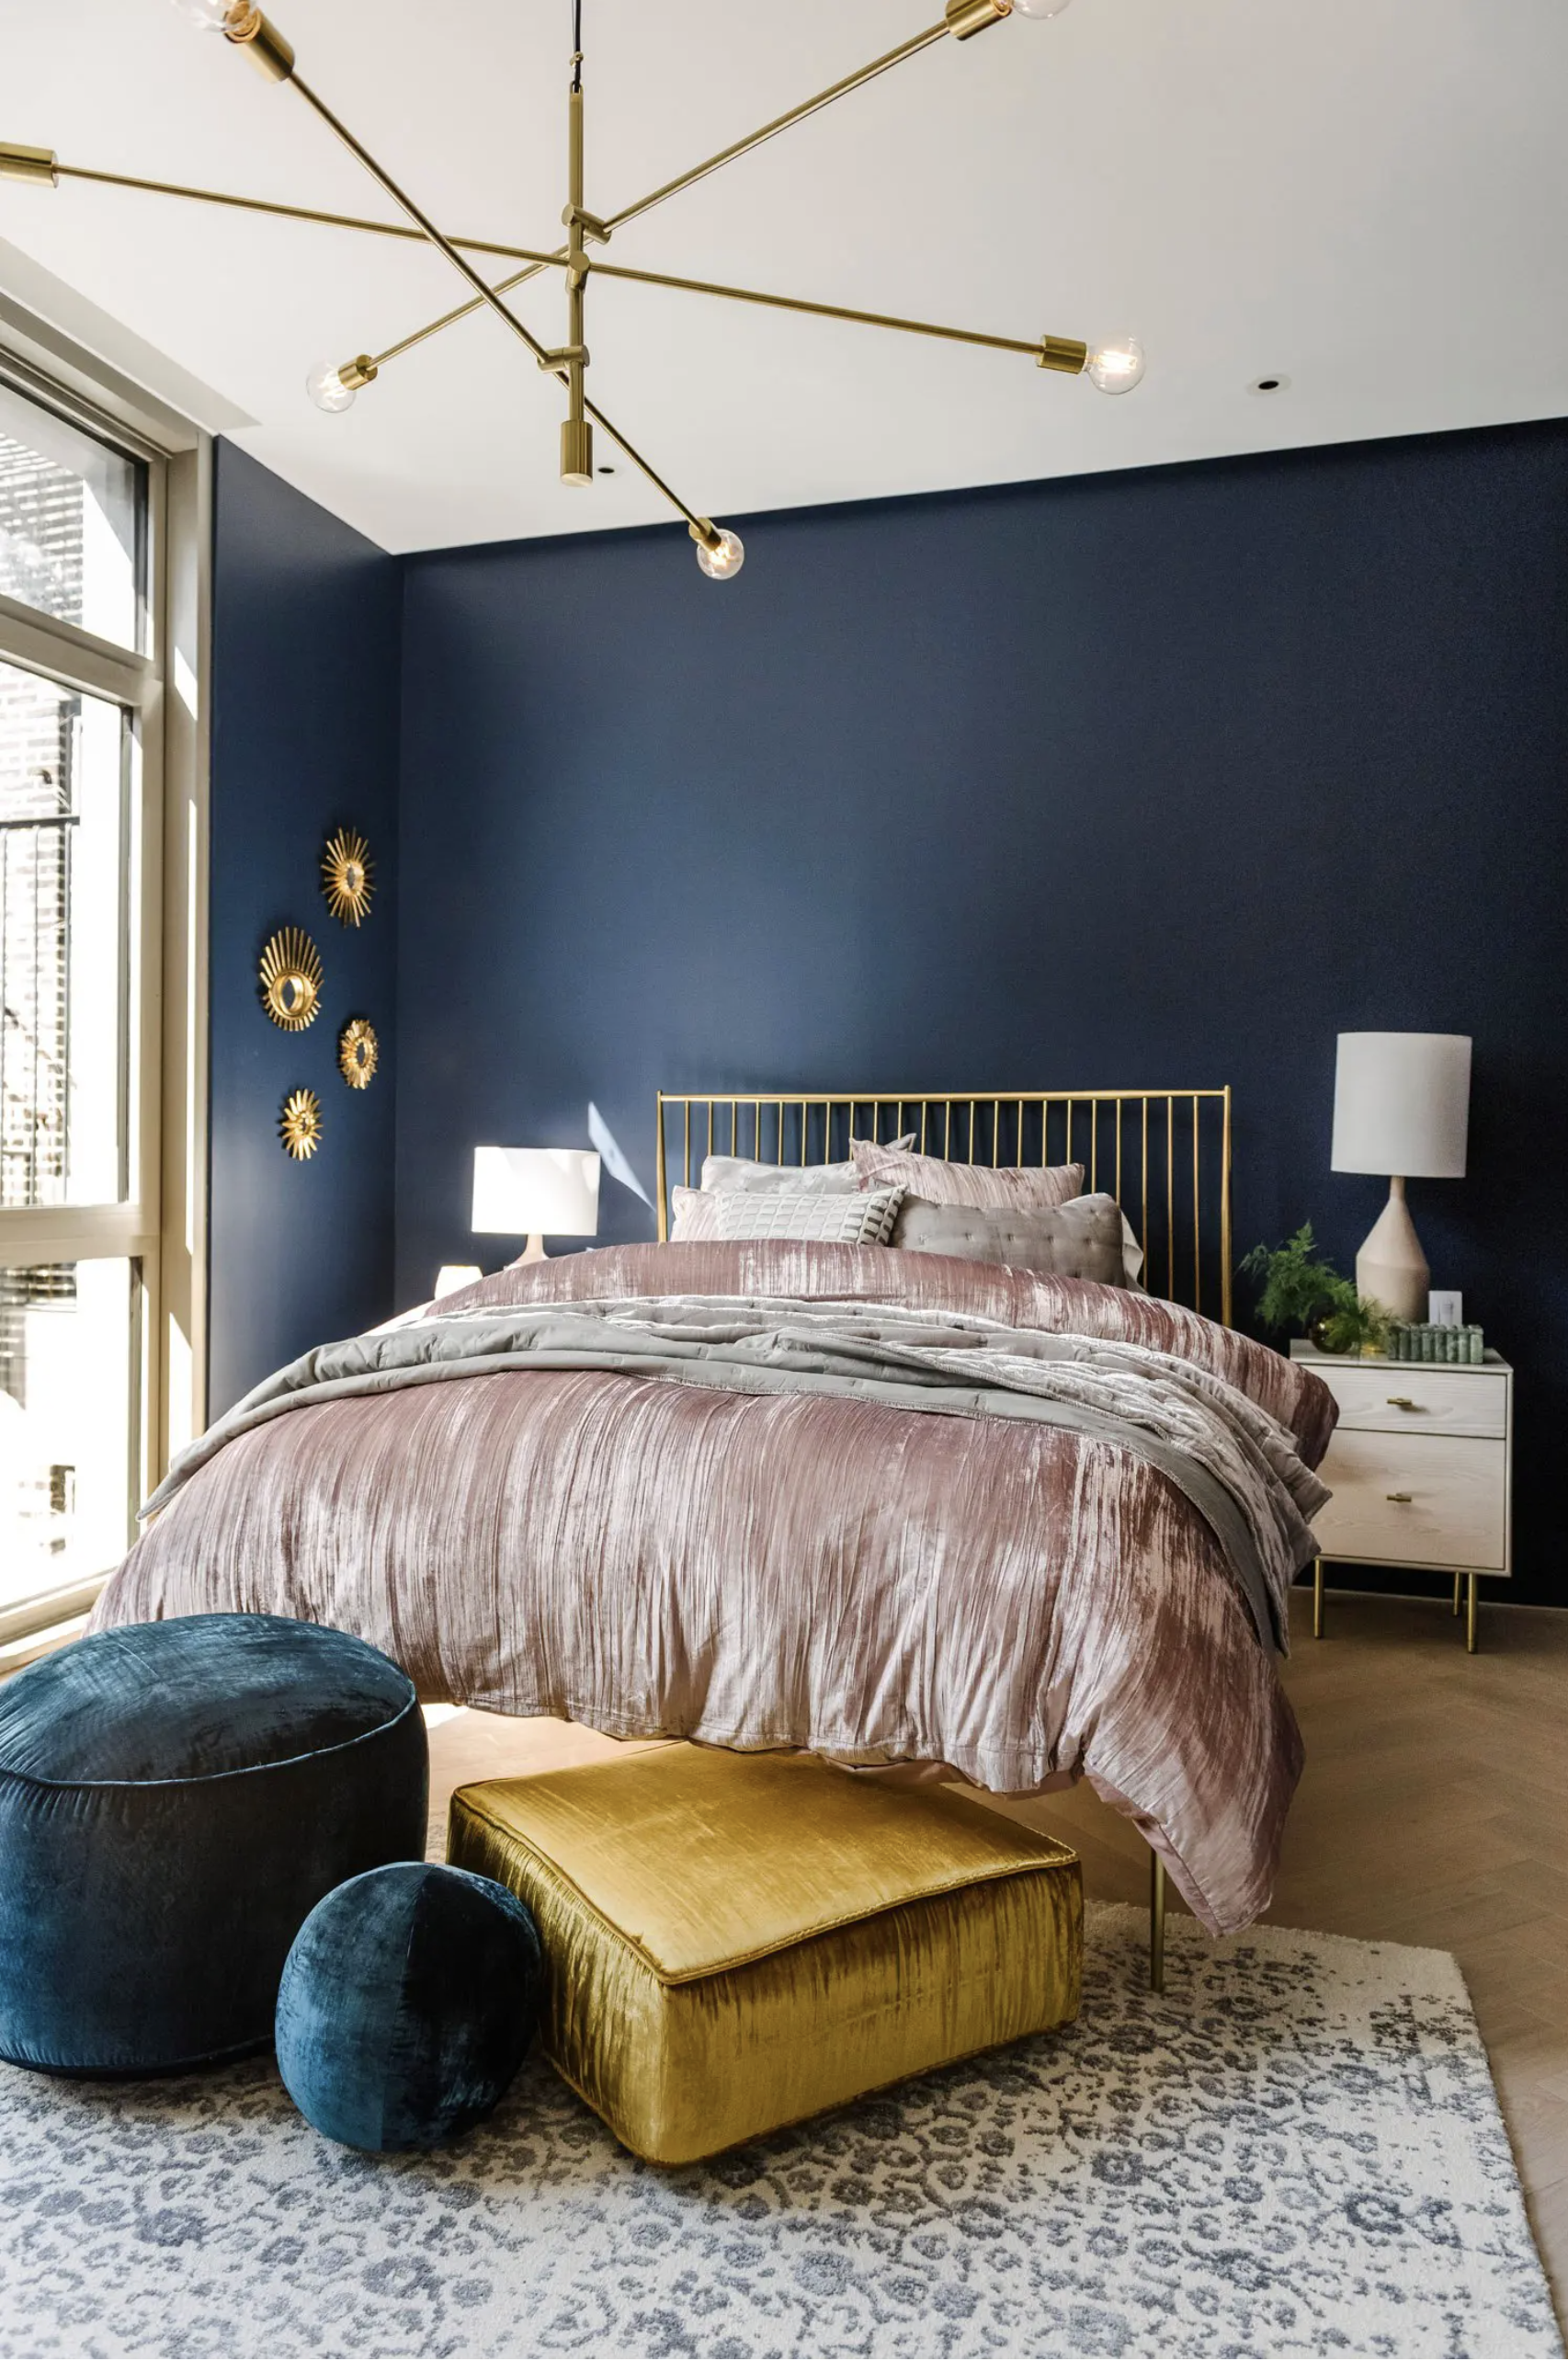 35+ Navy Blue and Gold Bedroom Ideas and Inspiration - Photo by Landon Vonderschmidt via West Elm, feat. paint color 'Naval SW 6244' by Sherwin Williams